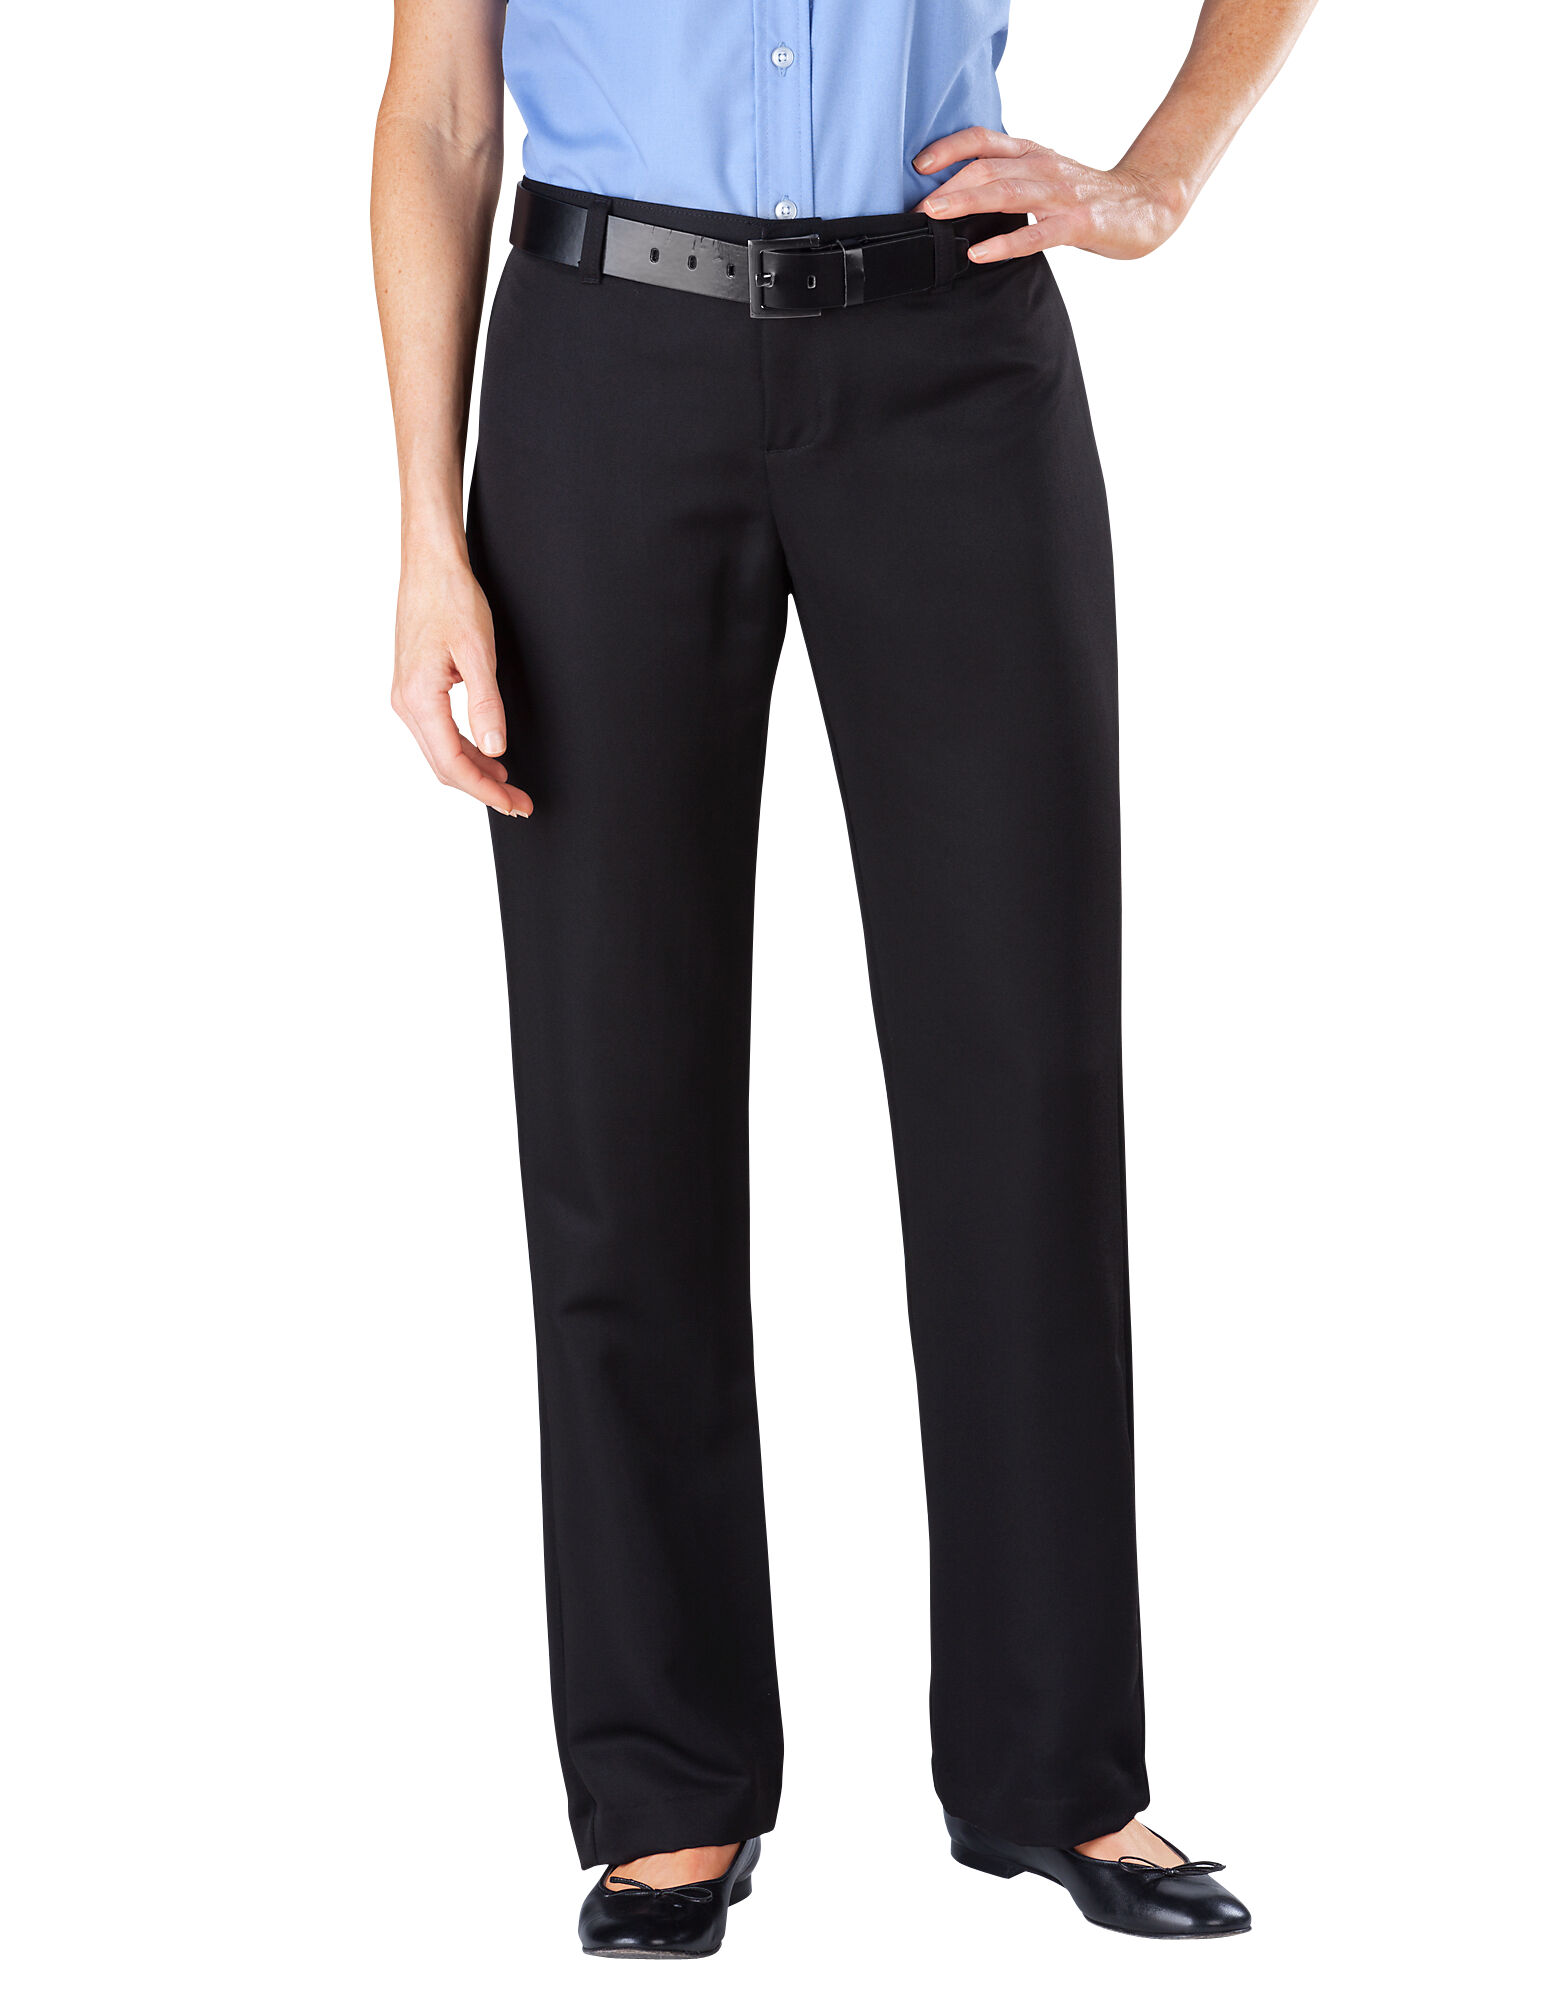 Women's Relaxed Fit Pocketless Micro Denier Pant | Womens Pants ...